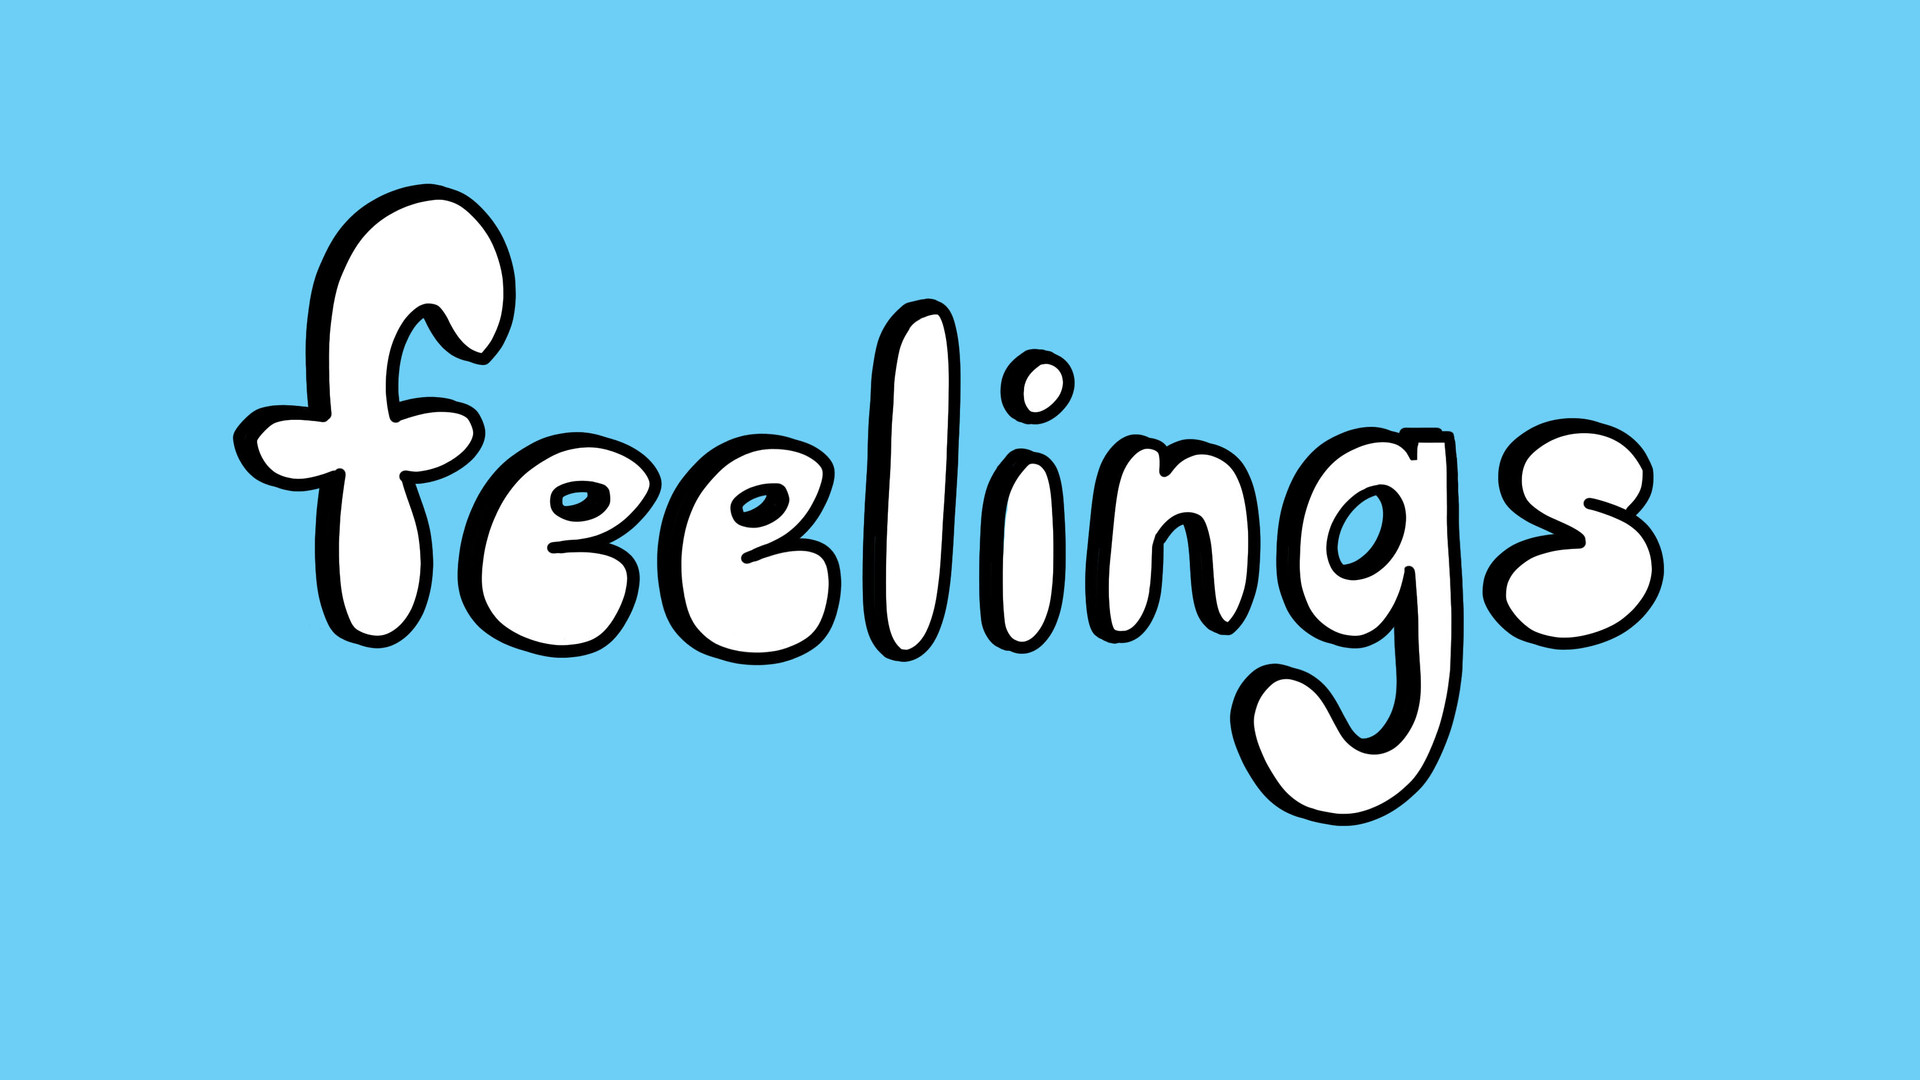 Feelings: An Emotional Experience (Animated Logo)